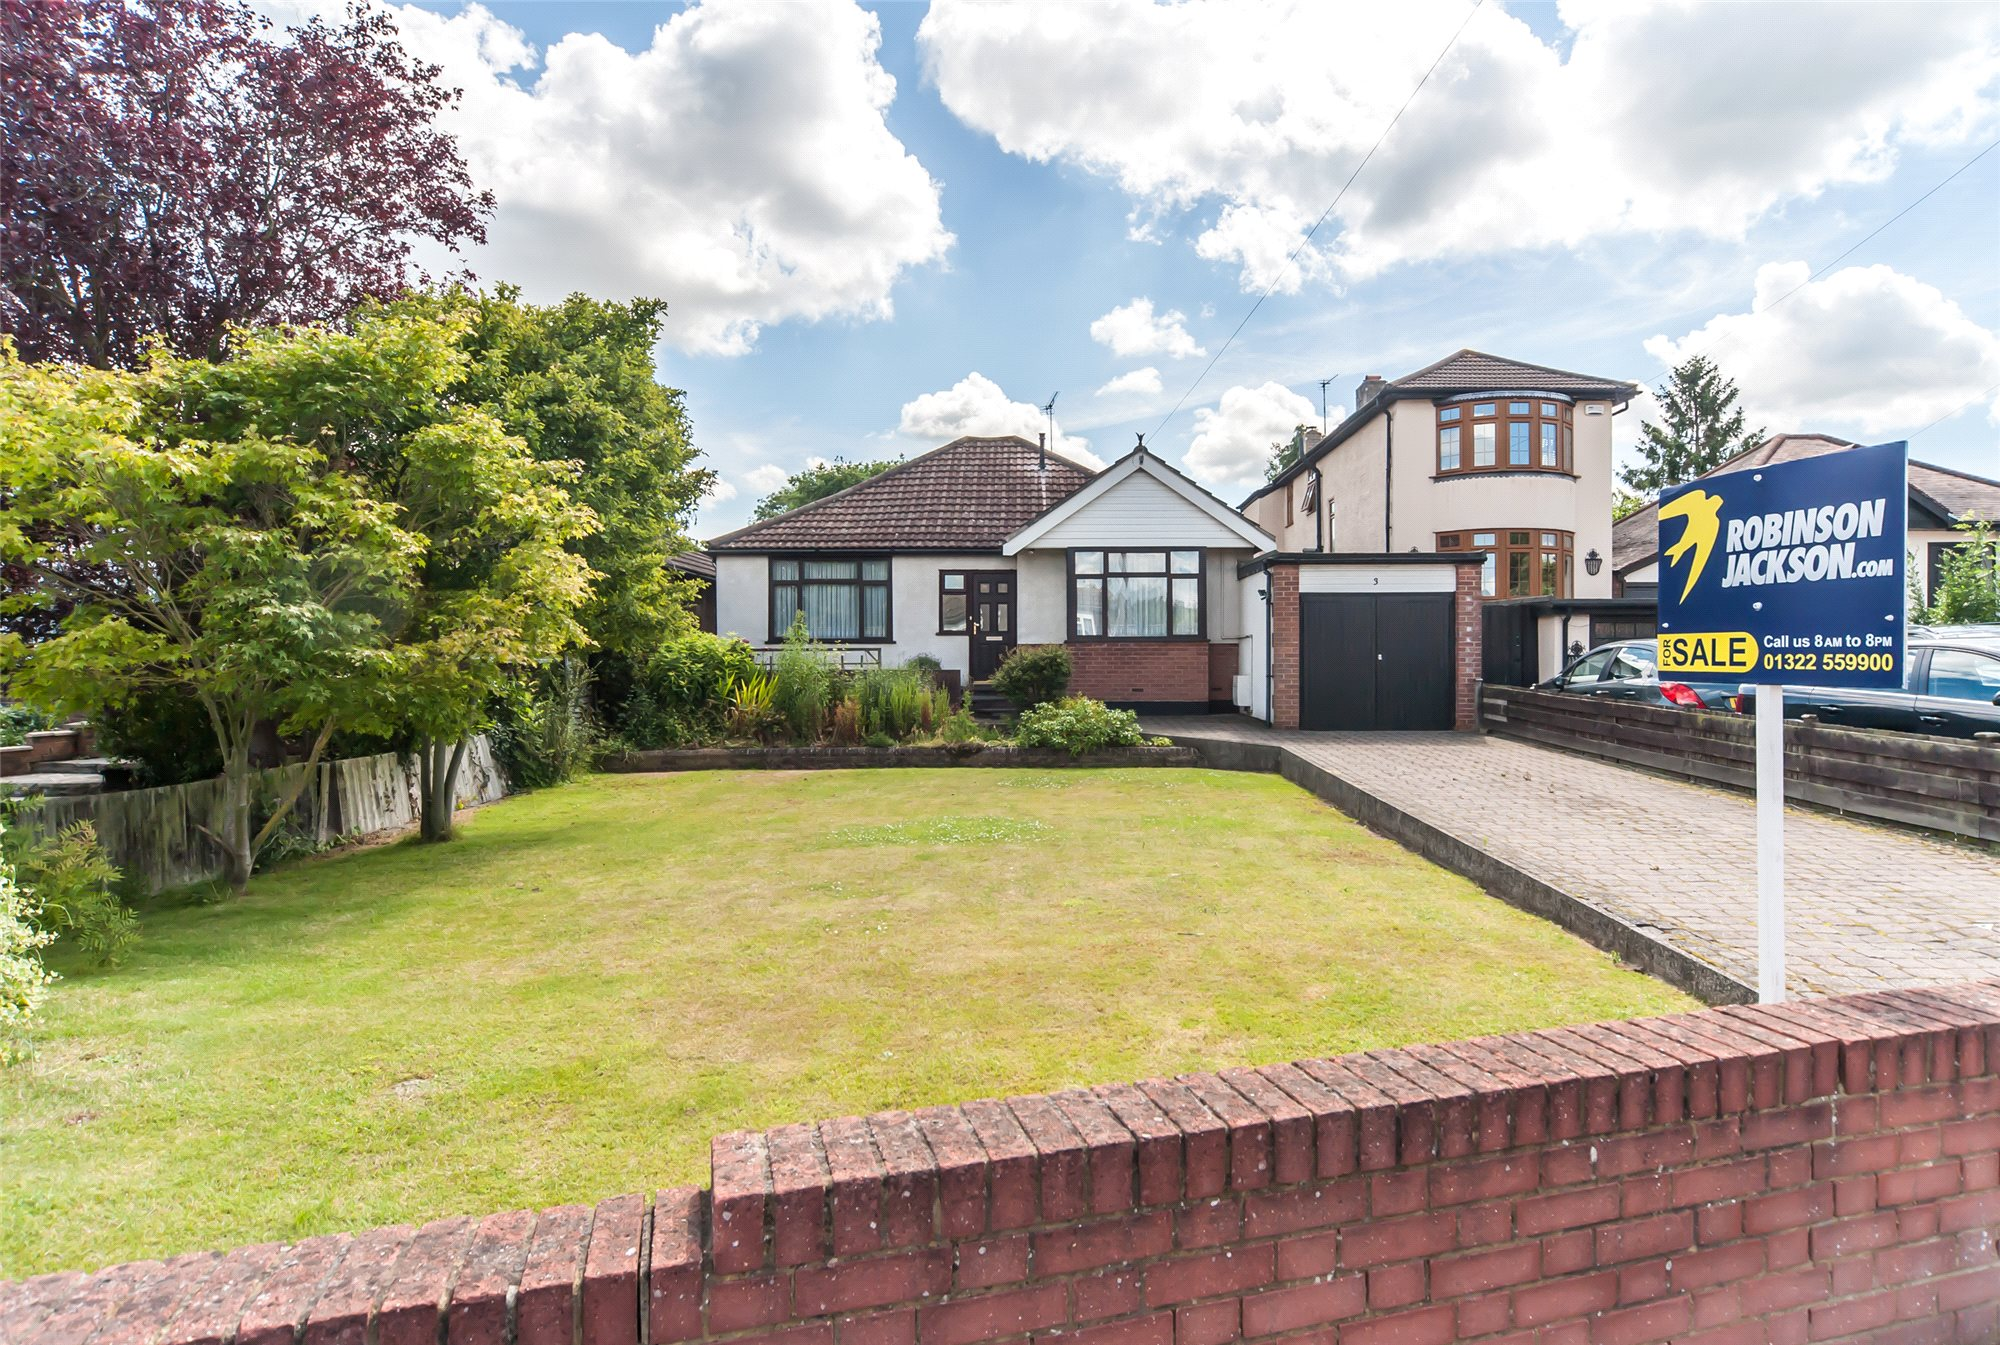 Summerhouse Drive, Joydens Wood, Bexley, DA5